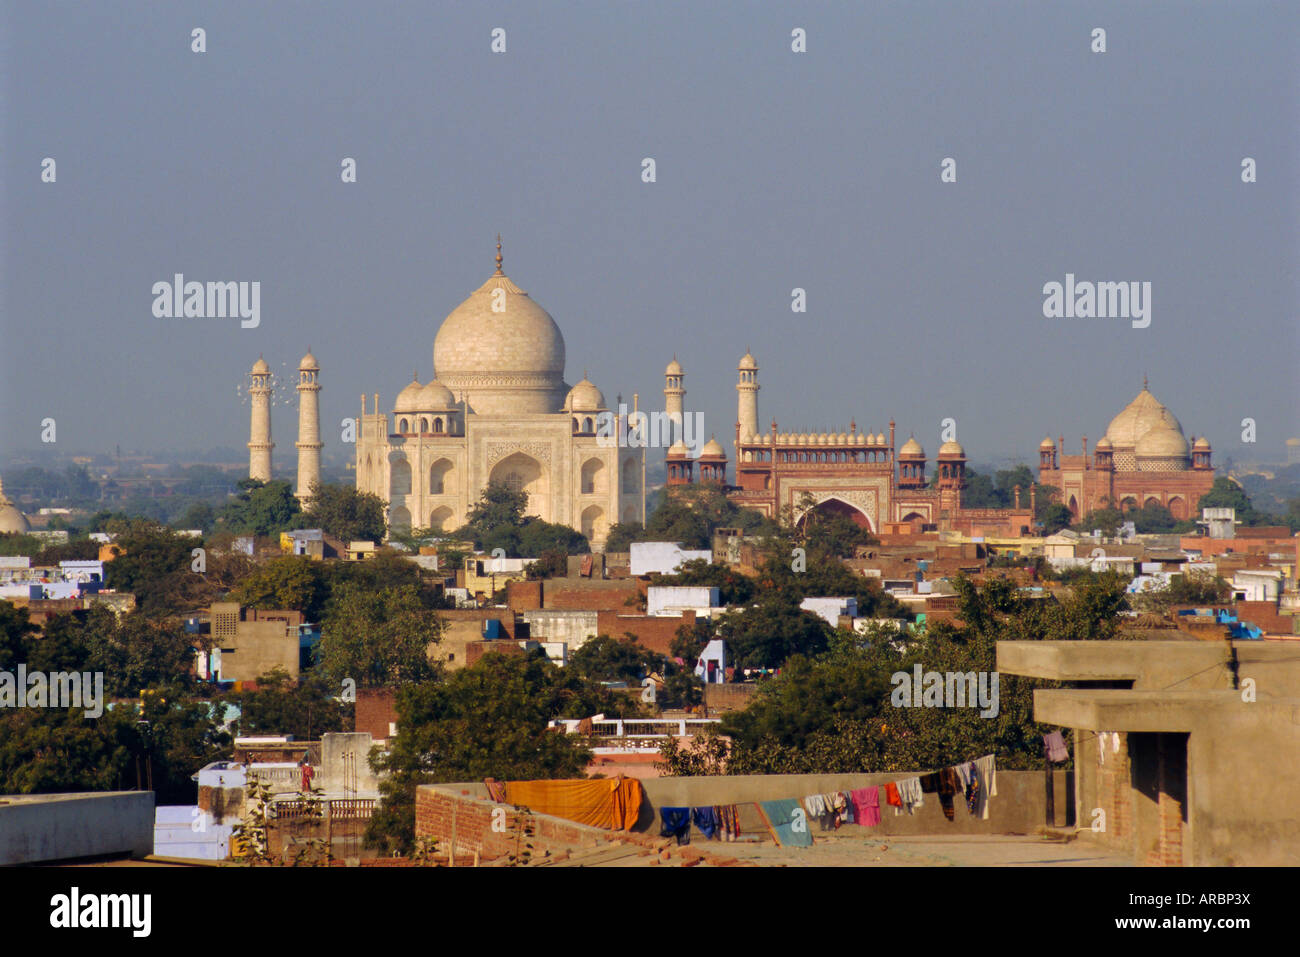 Taj Mahal on the banks of the Yamuna River, built by Shah Jahan for his wife, Agra, India - Stock Image